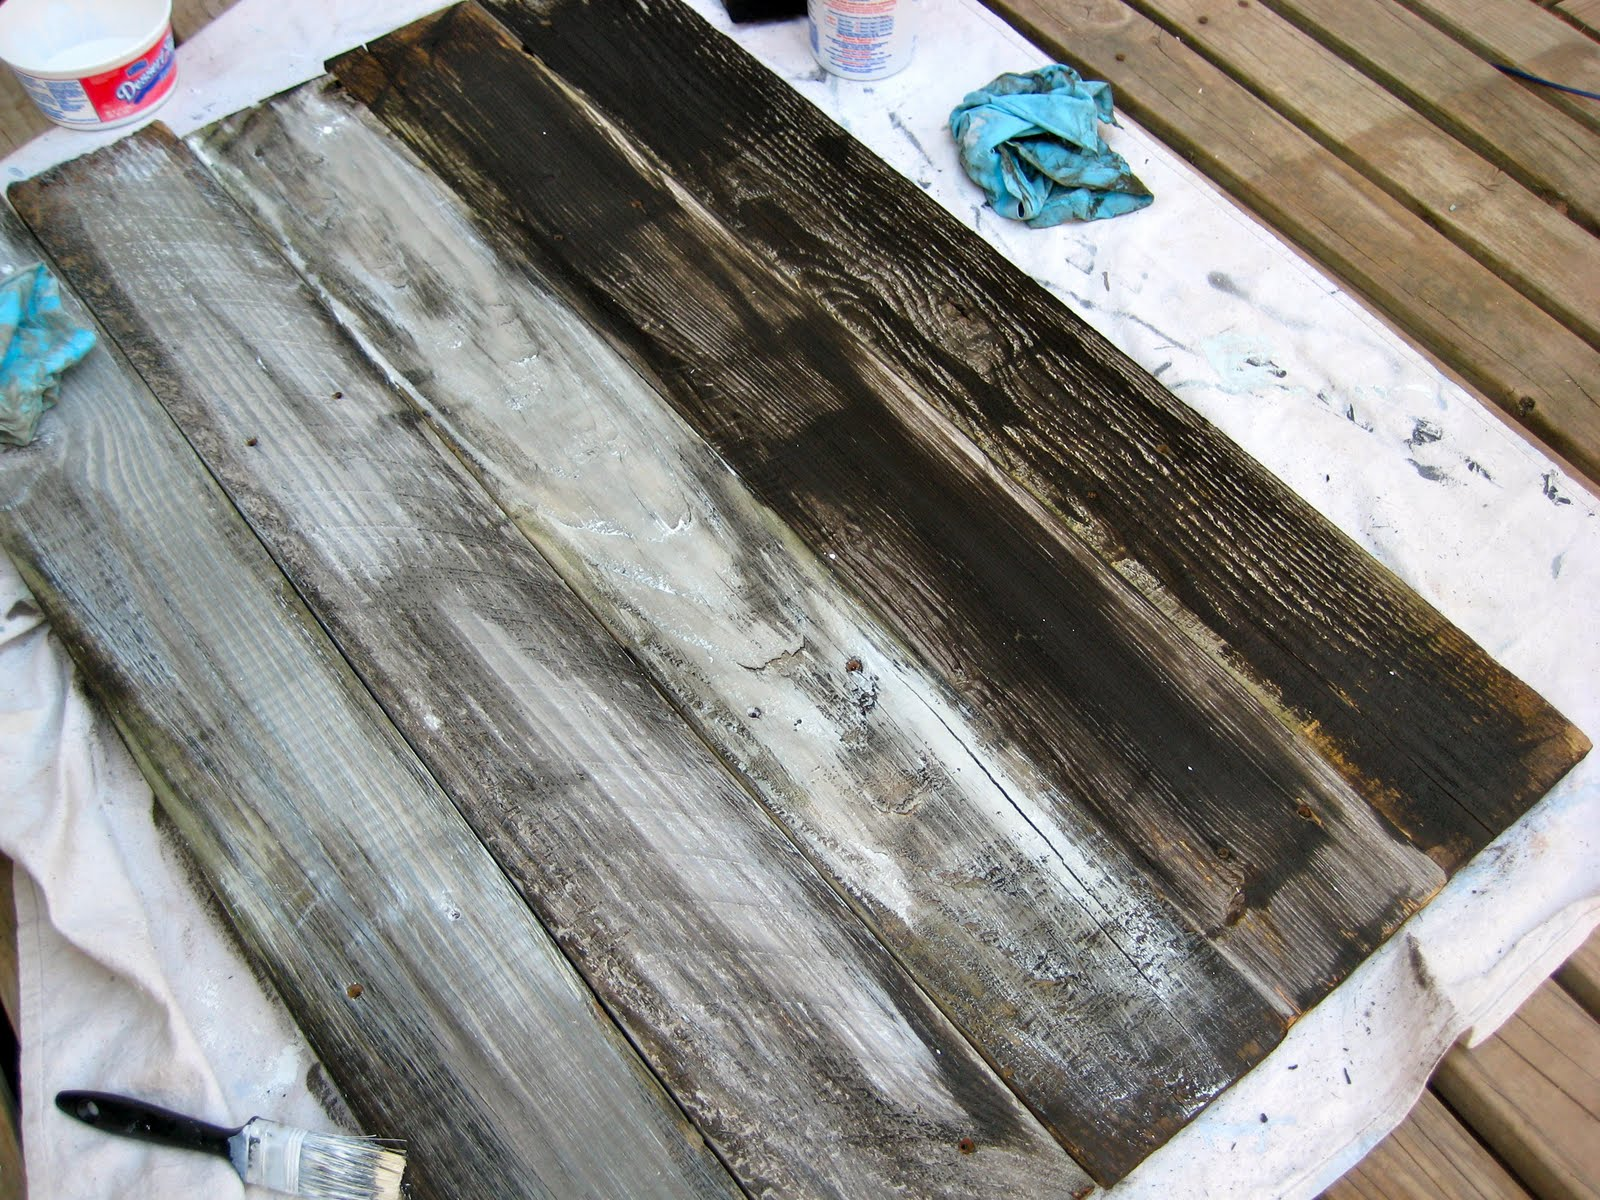 Can i stain over stain - Right After Applying The Stain I Used A Mixture Of Flat White Latex Paint And Water To Create The Whitewashed Look As You Can See In The Above Photo